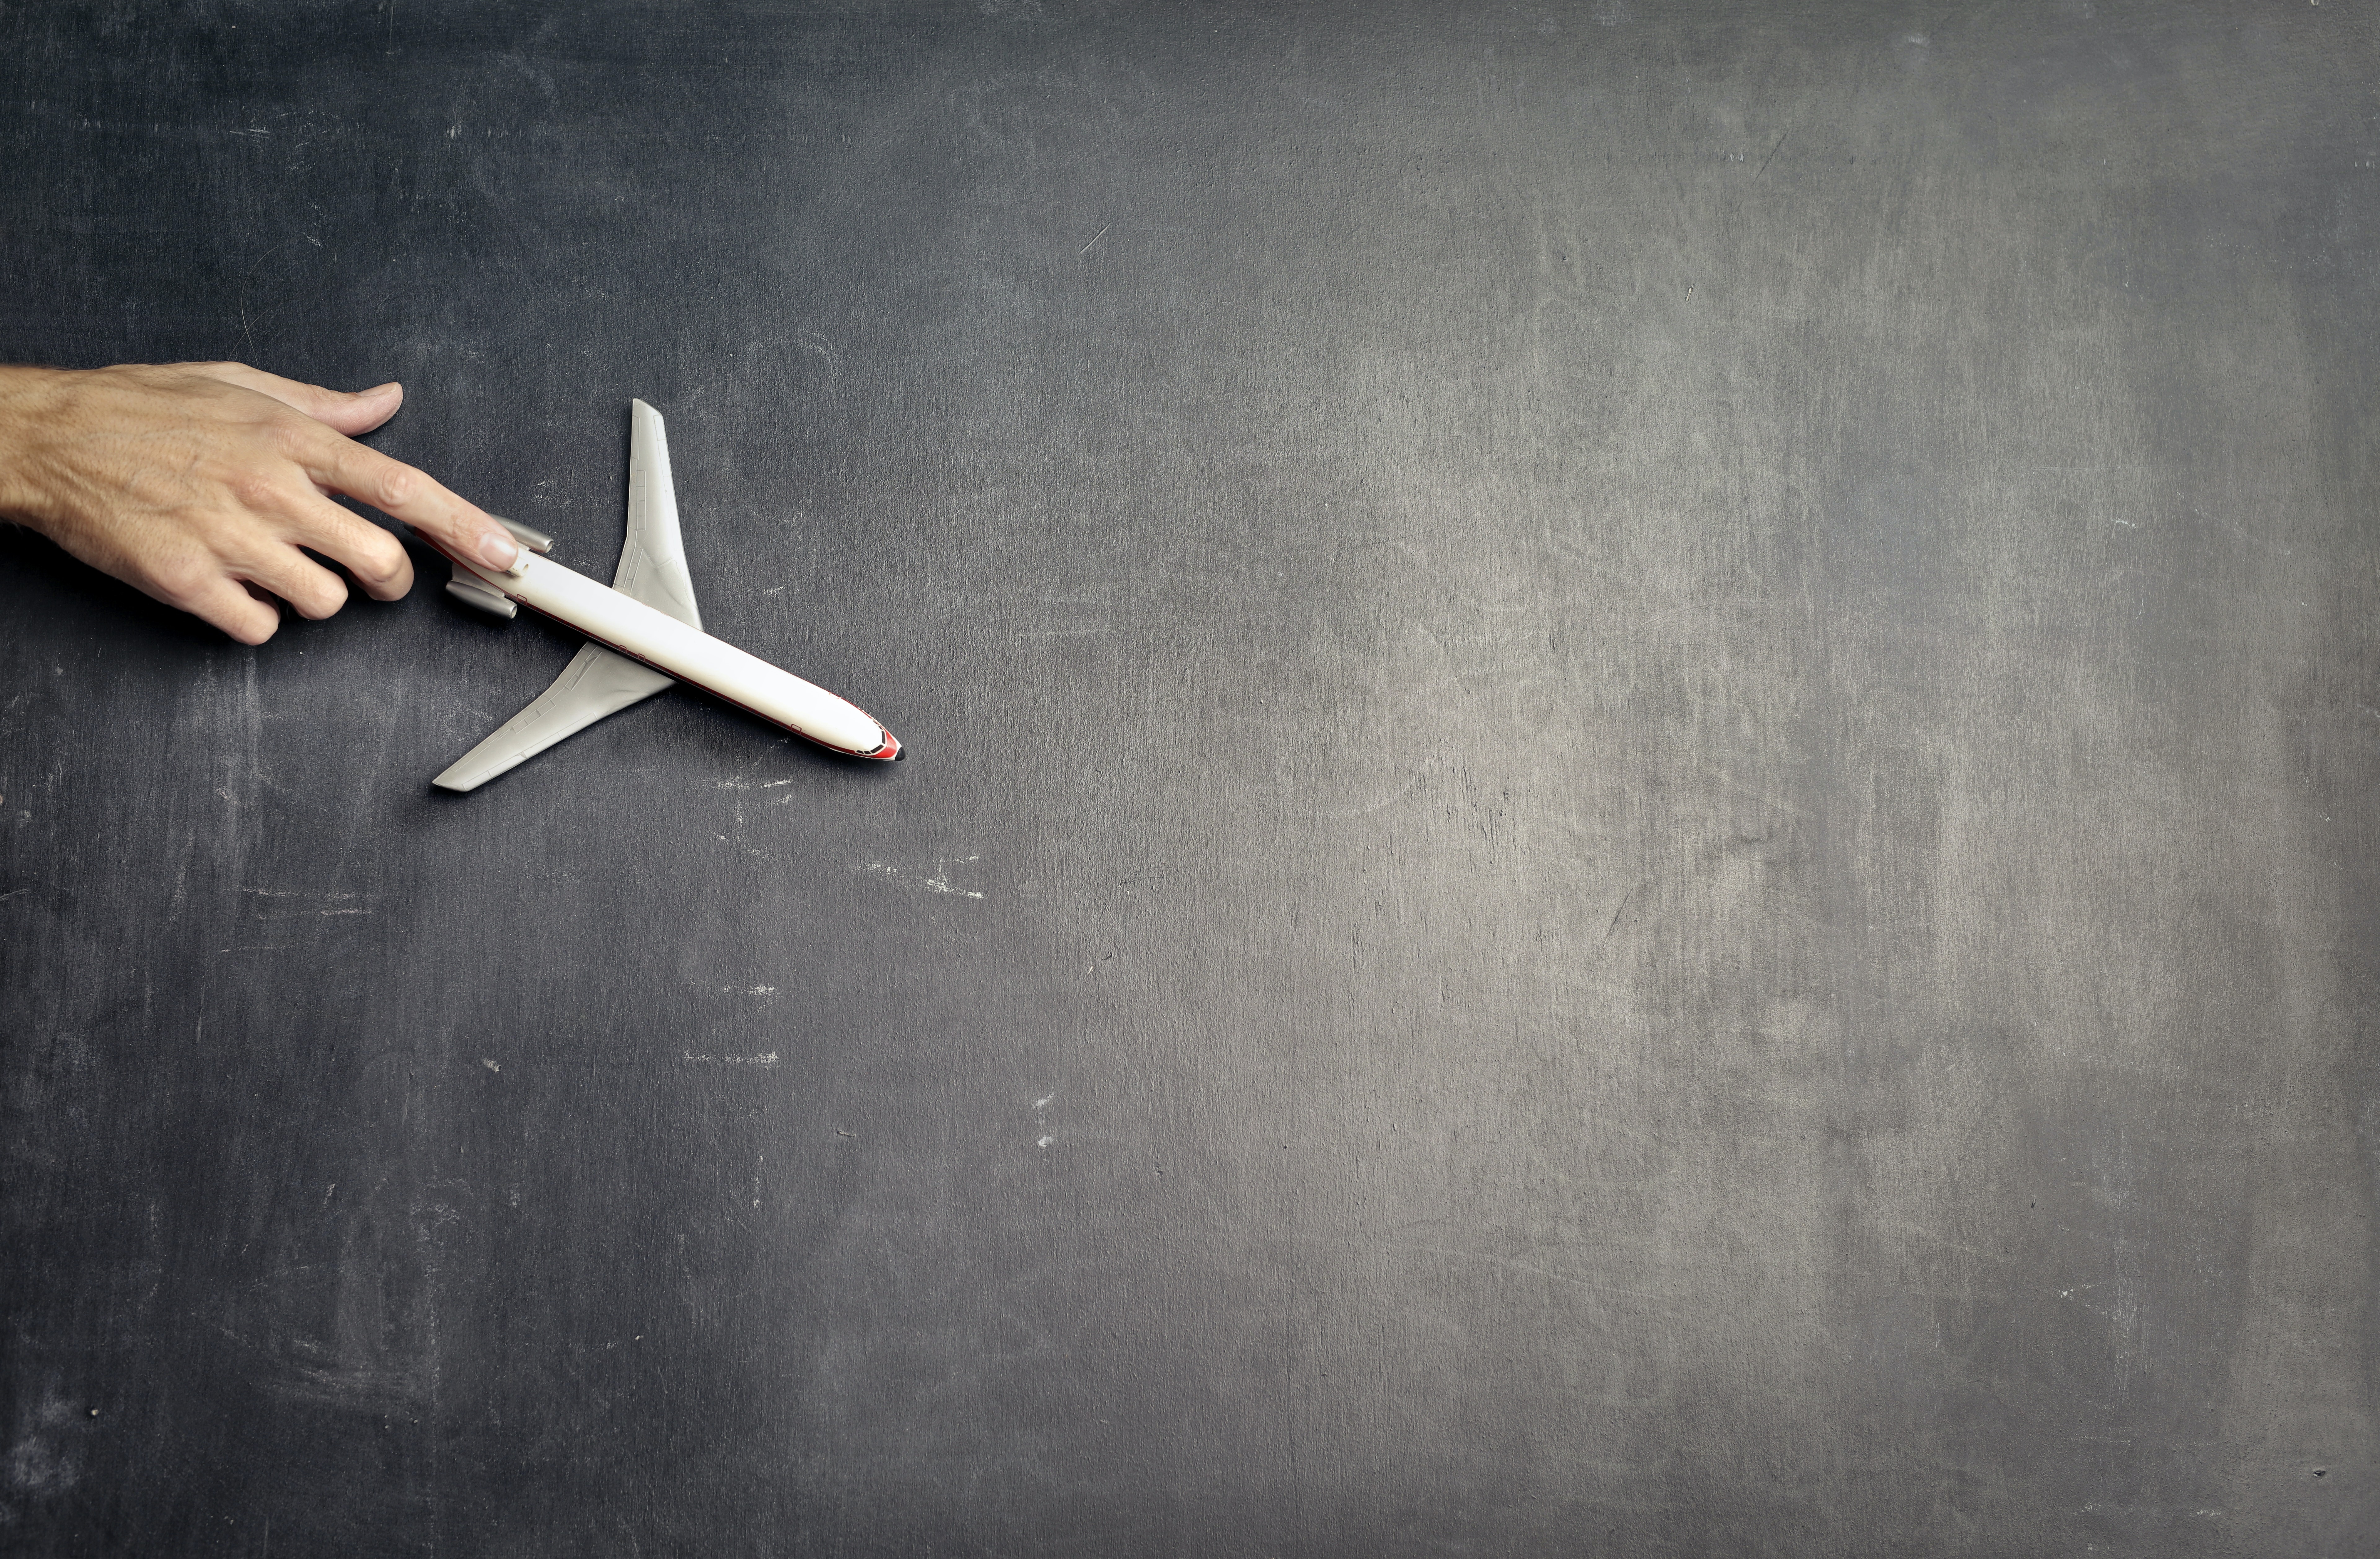 anonymous-person-with-miniature-airplane-on-chalkboard-3769120